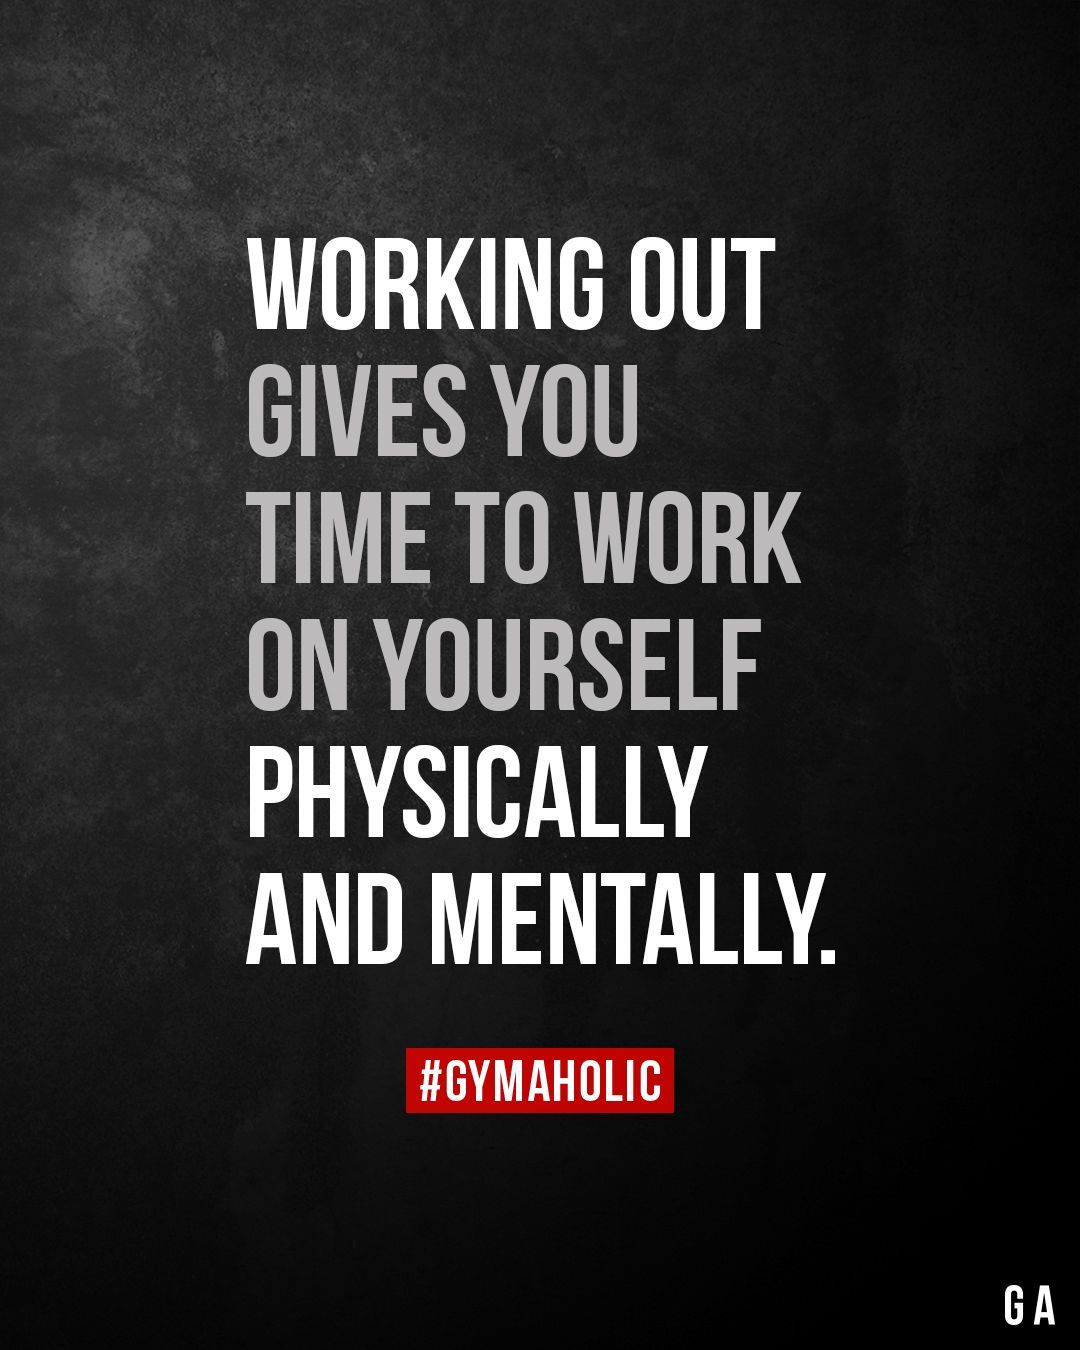 Working out gives you time to work on yourself physically and mentally.        Working out gives you...